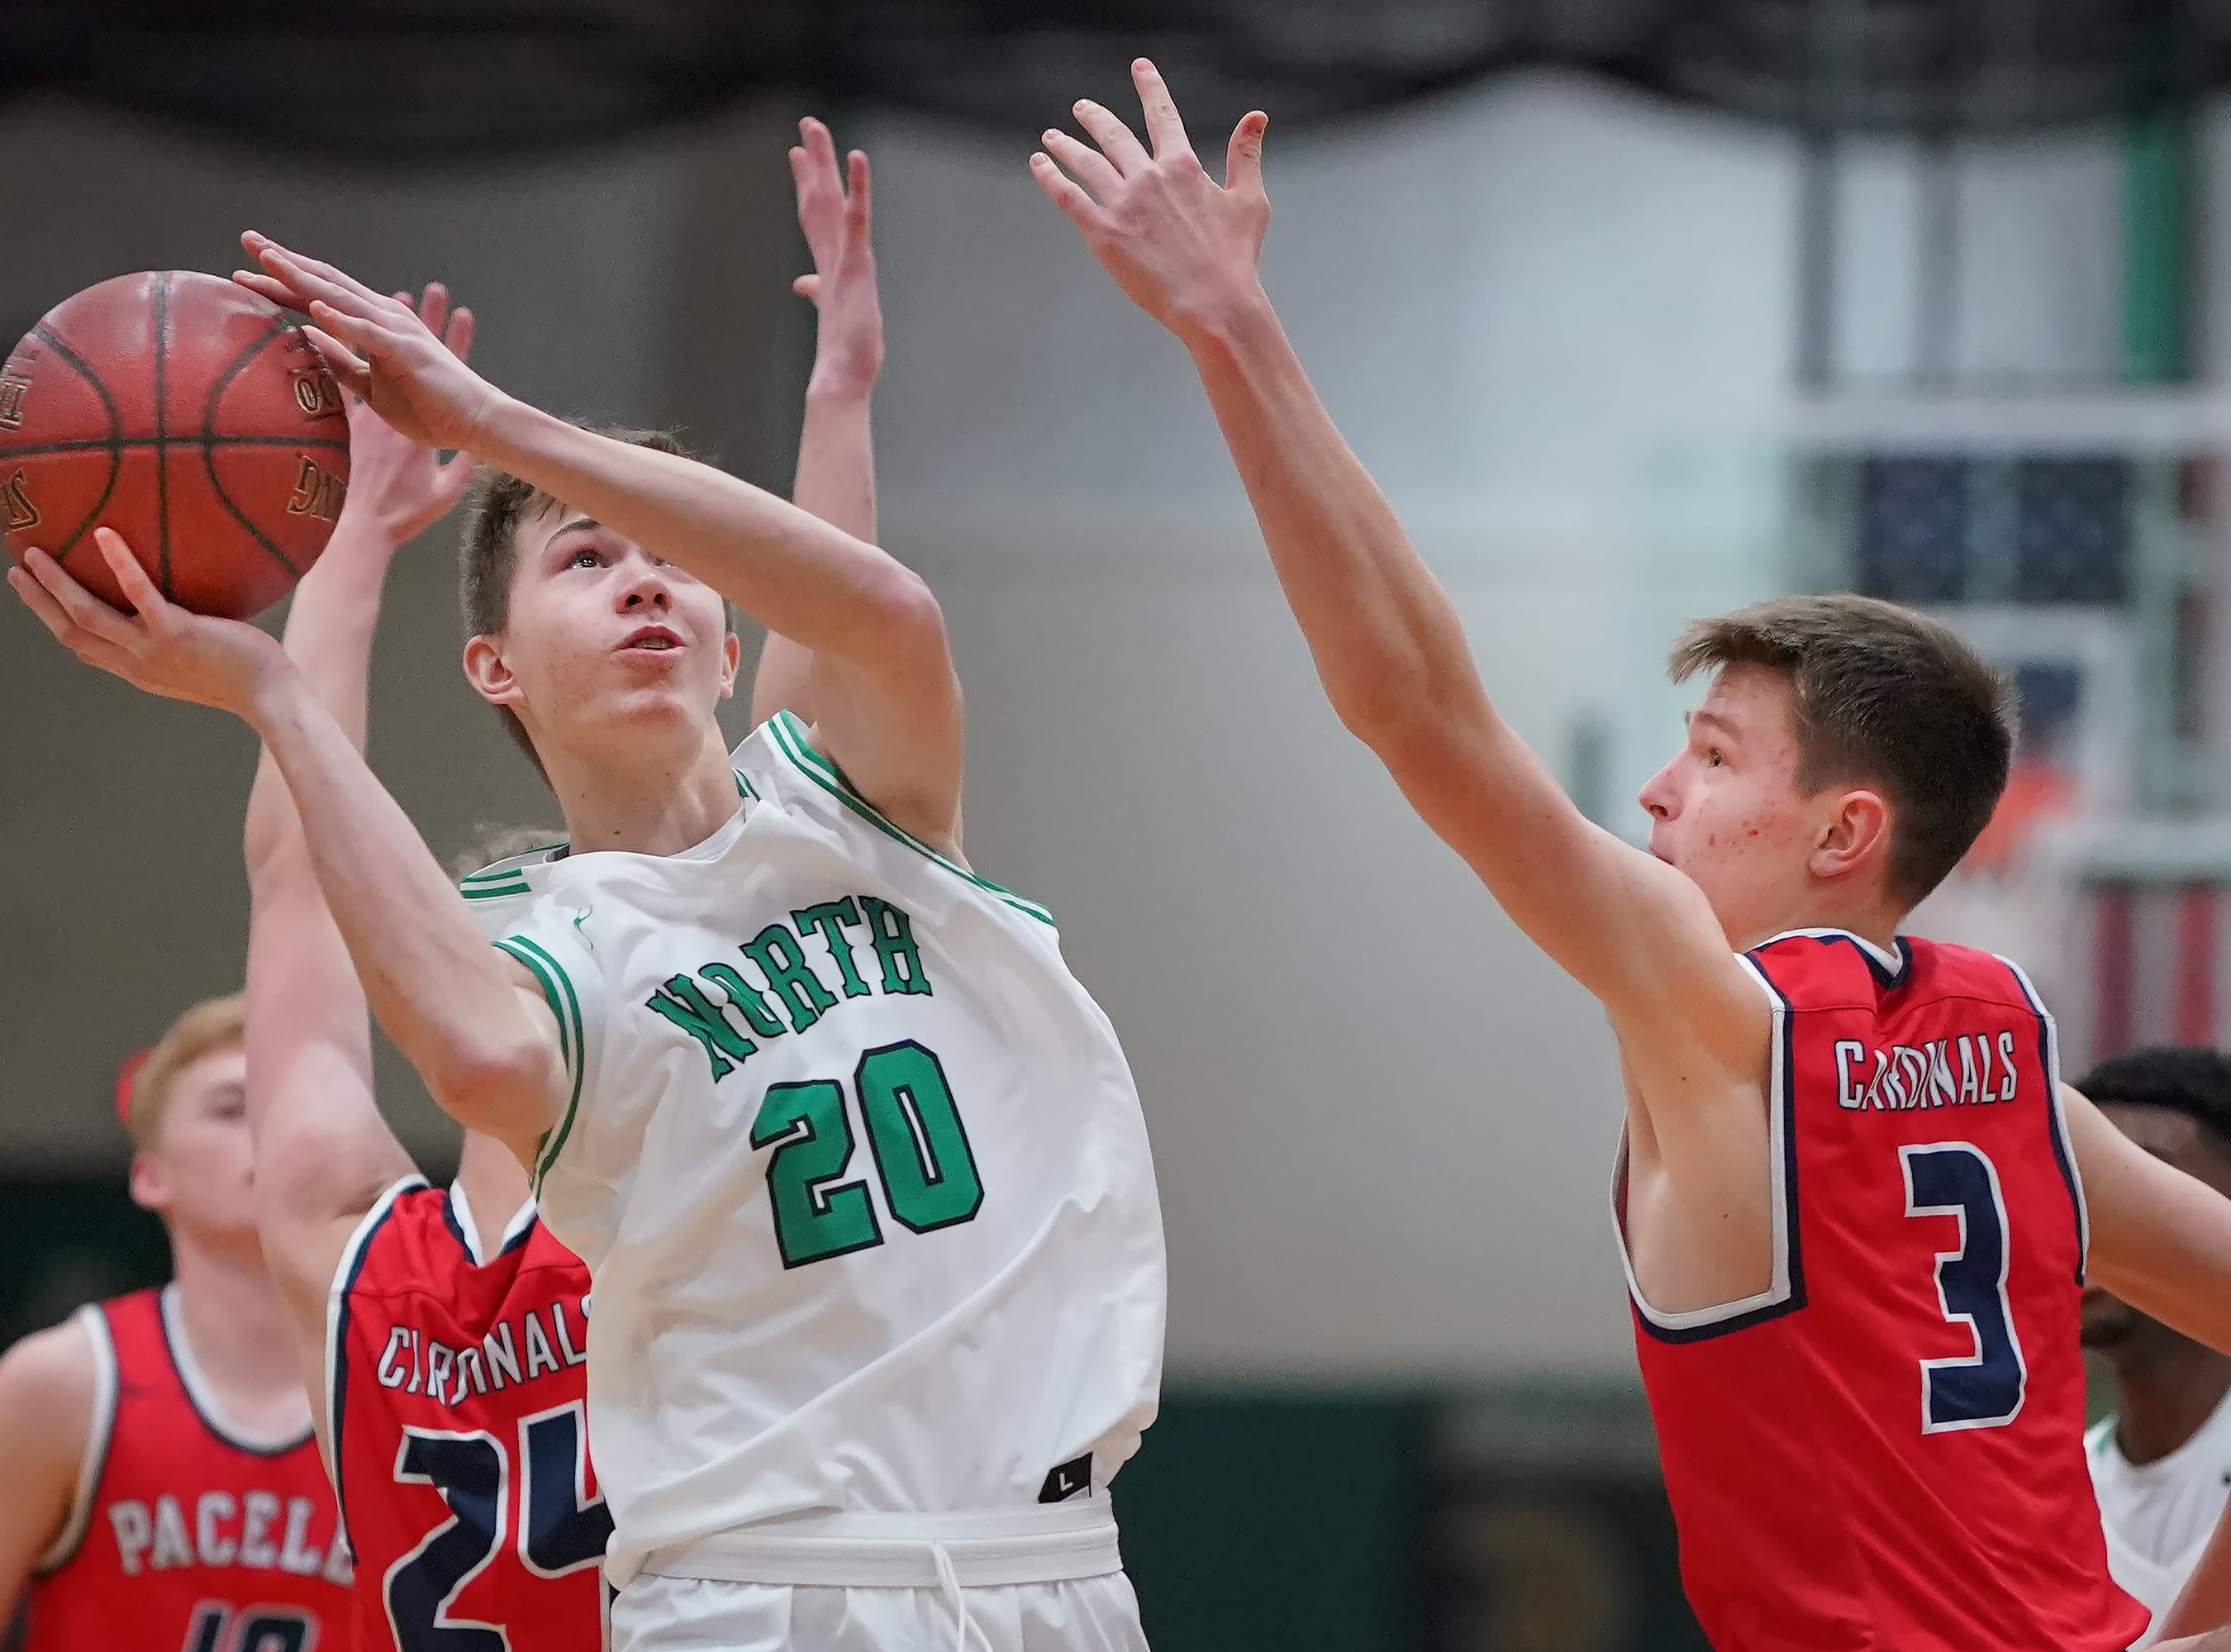 Brennon Colburn (20) of Oshkosh North fights for a shot. The Oshkosh North Spartans hosted the Stevens Point Pacelli Catholic Cardinals in the Friday night game of the Fox River Brewing Thanksgiving Classic Tournament.